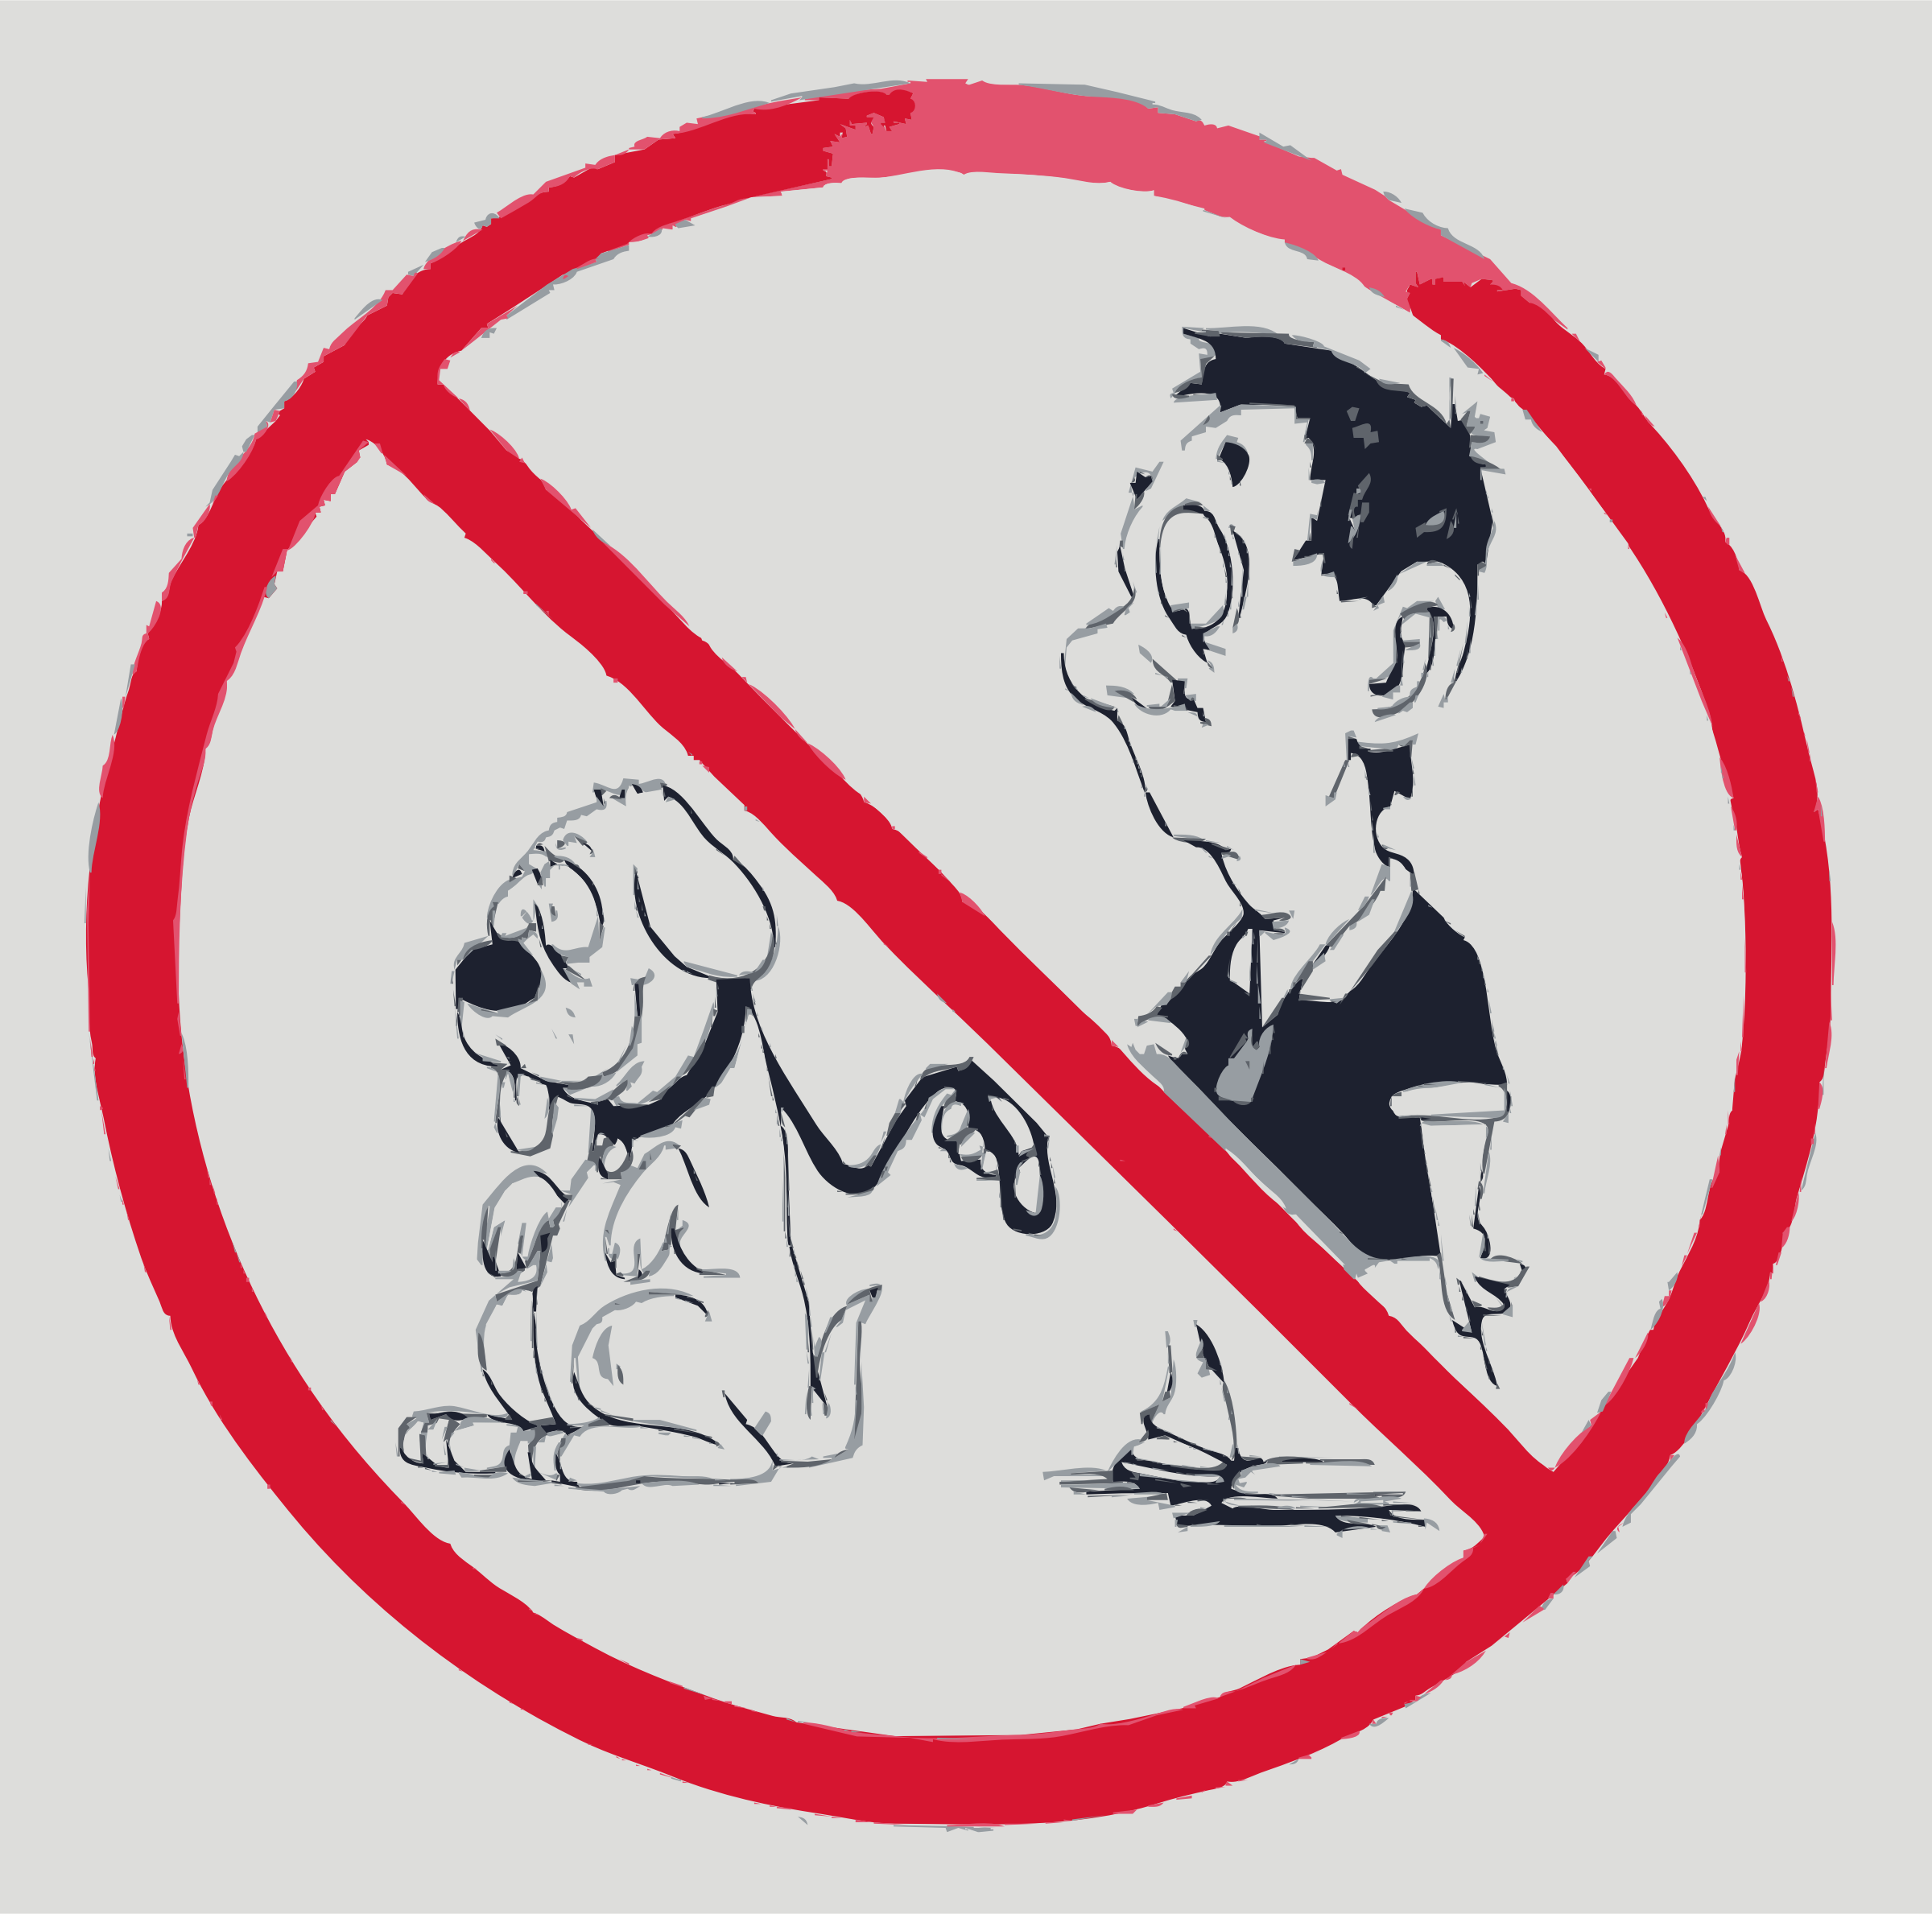 No dogs allowed by rejon